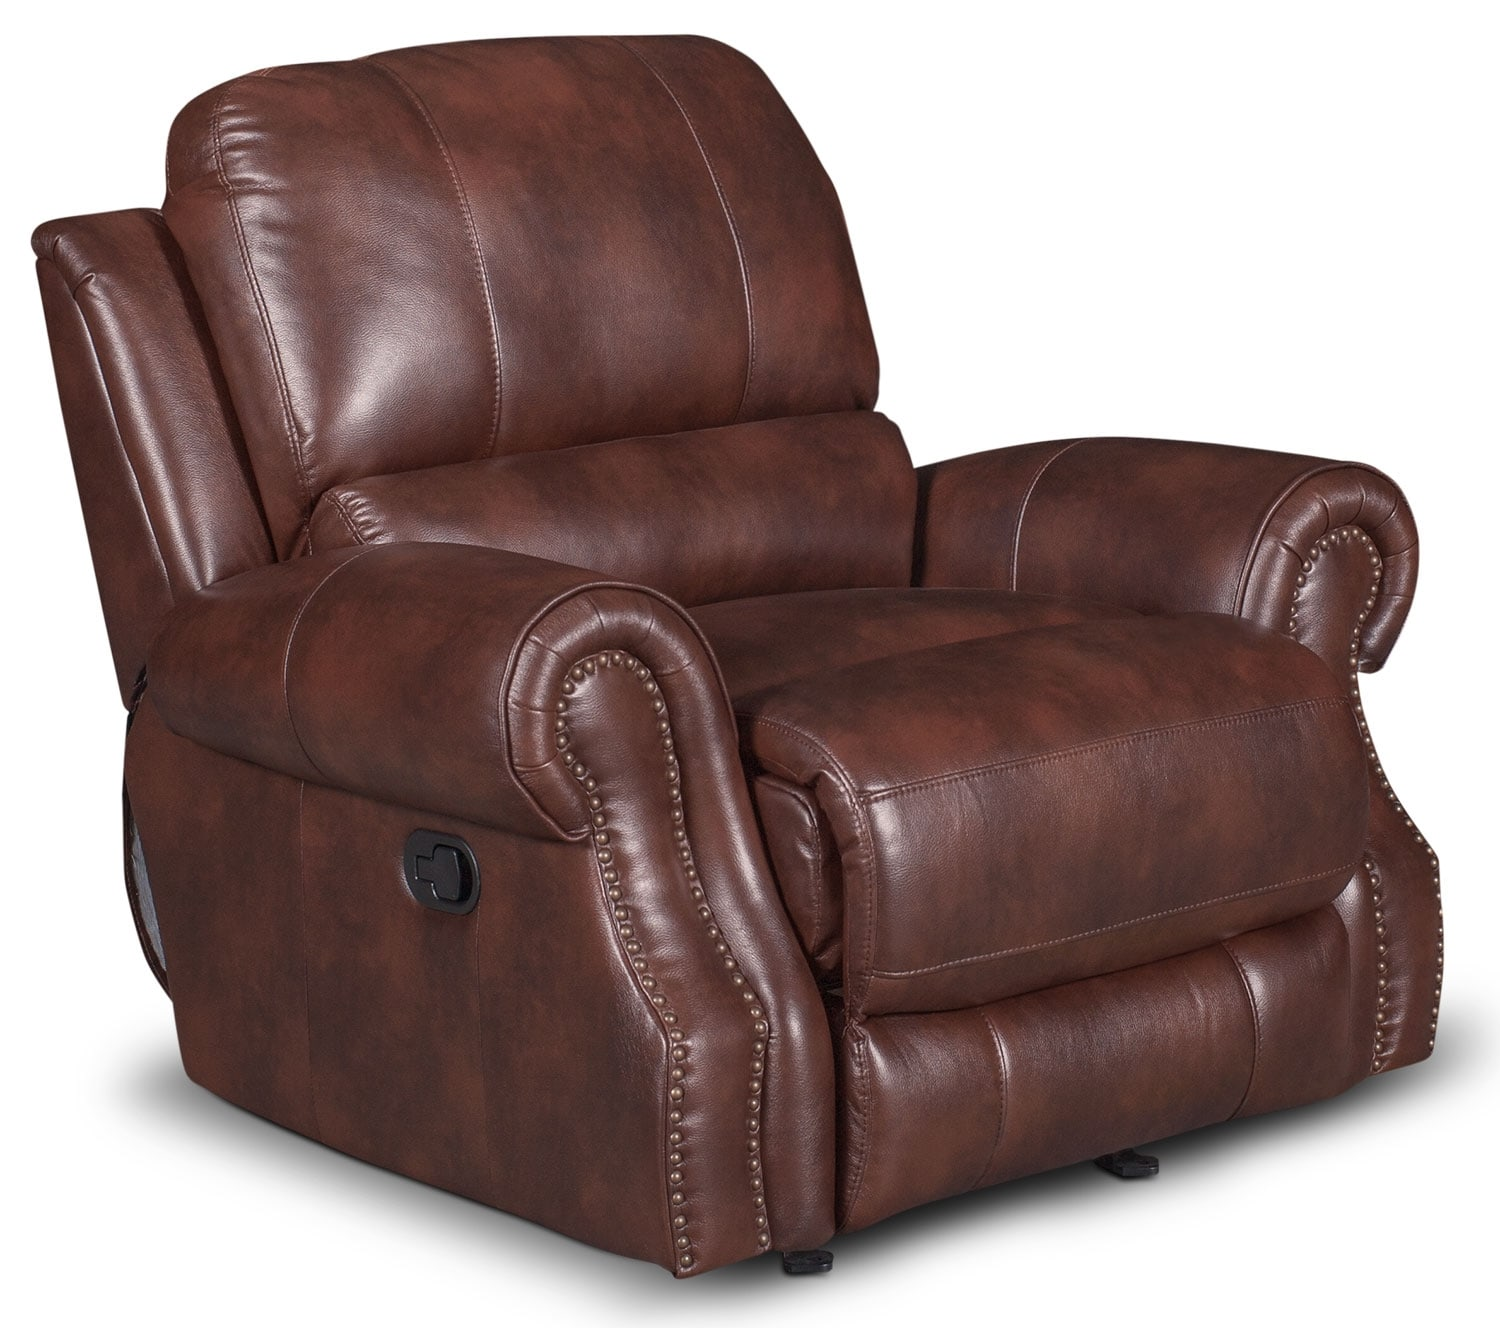 Magnum Leather-Look Fabric Power Reclining Chair – Brown